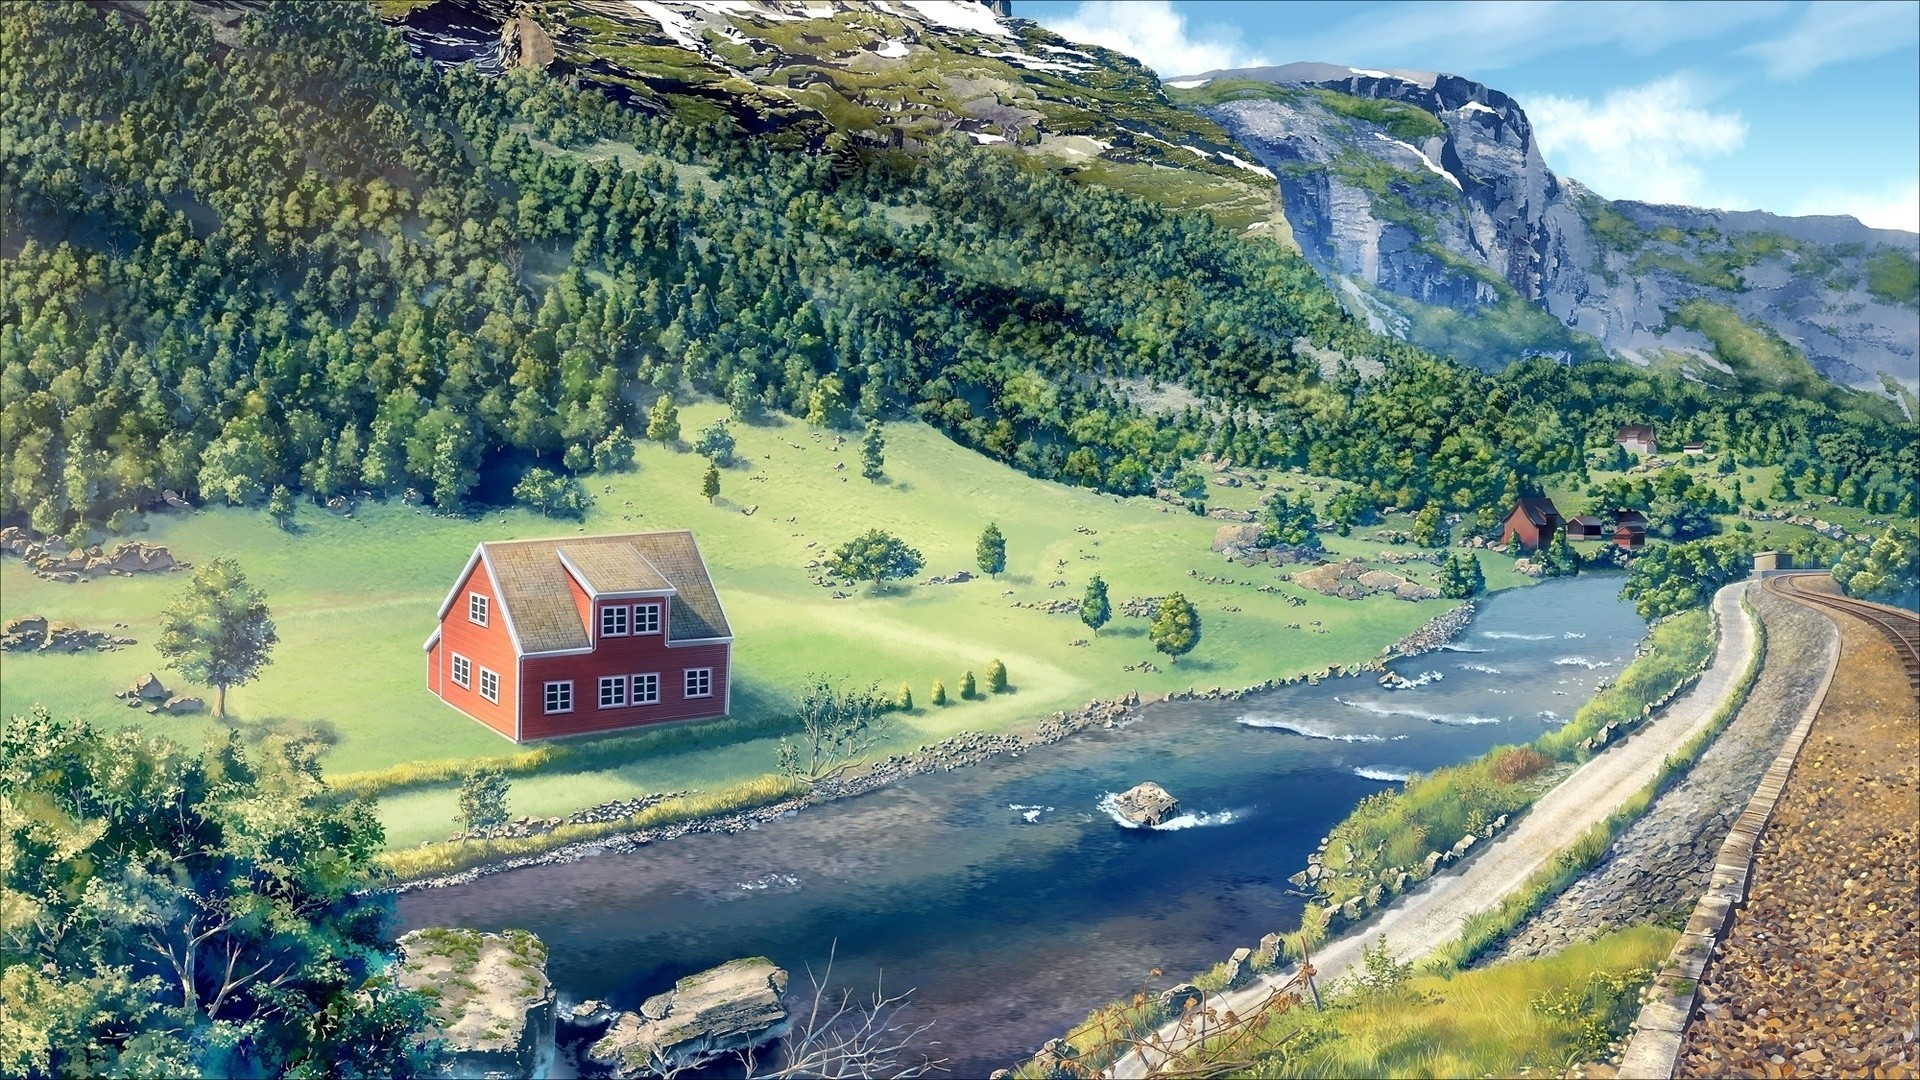 House By The River Art Desktop Wallpaper